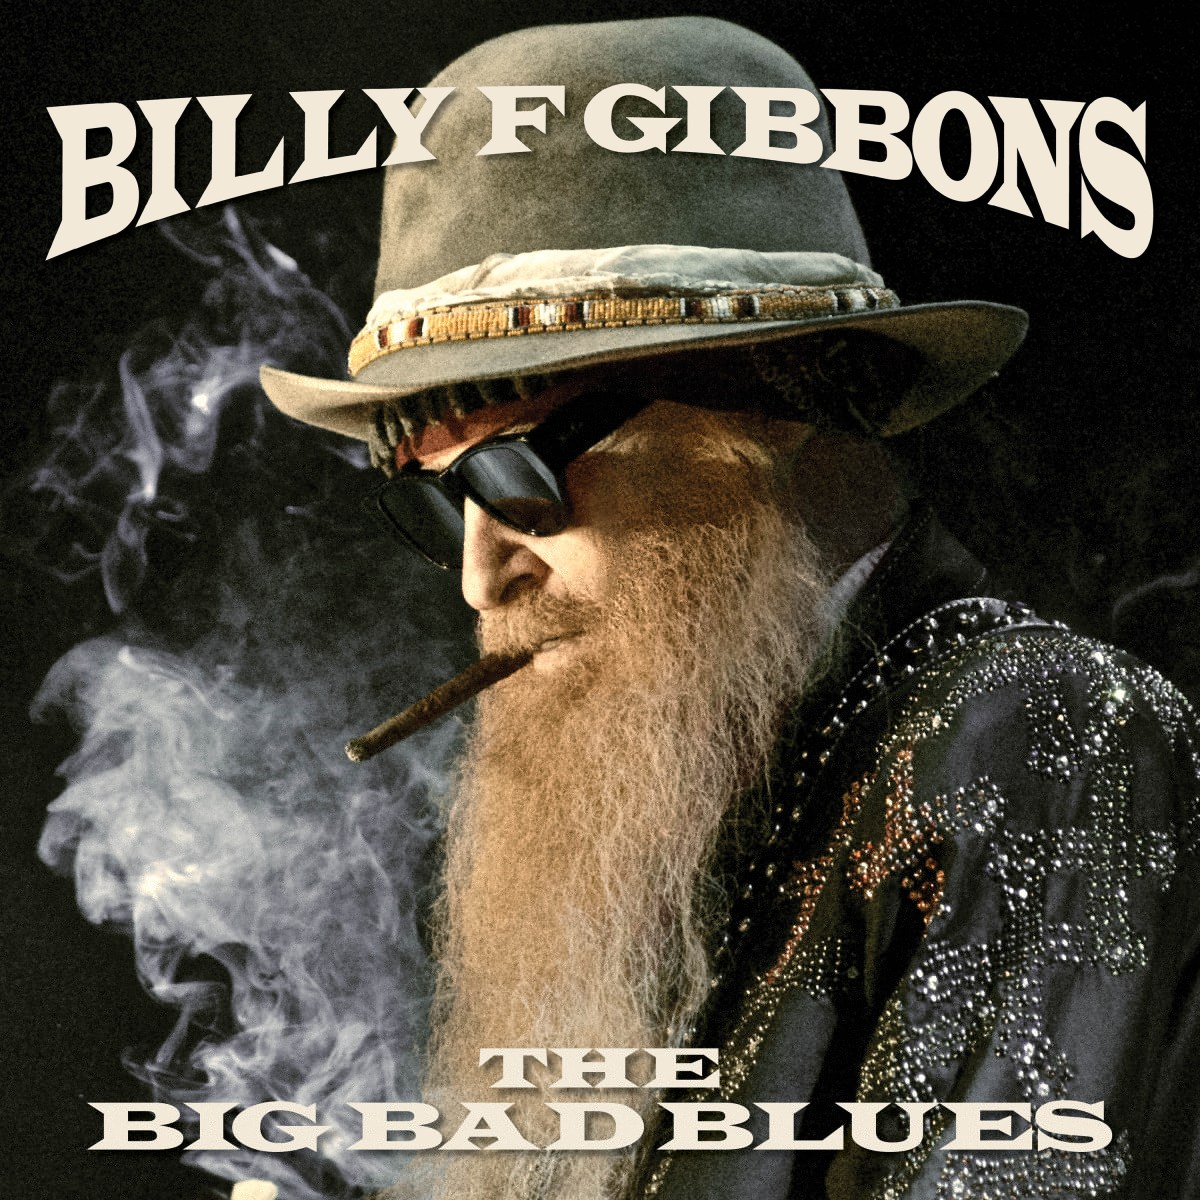 Billy-Gibbons-The-Big-Bad-Blues.jpg